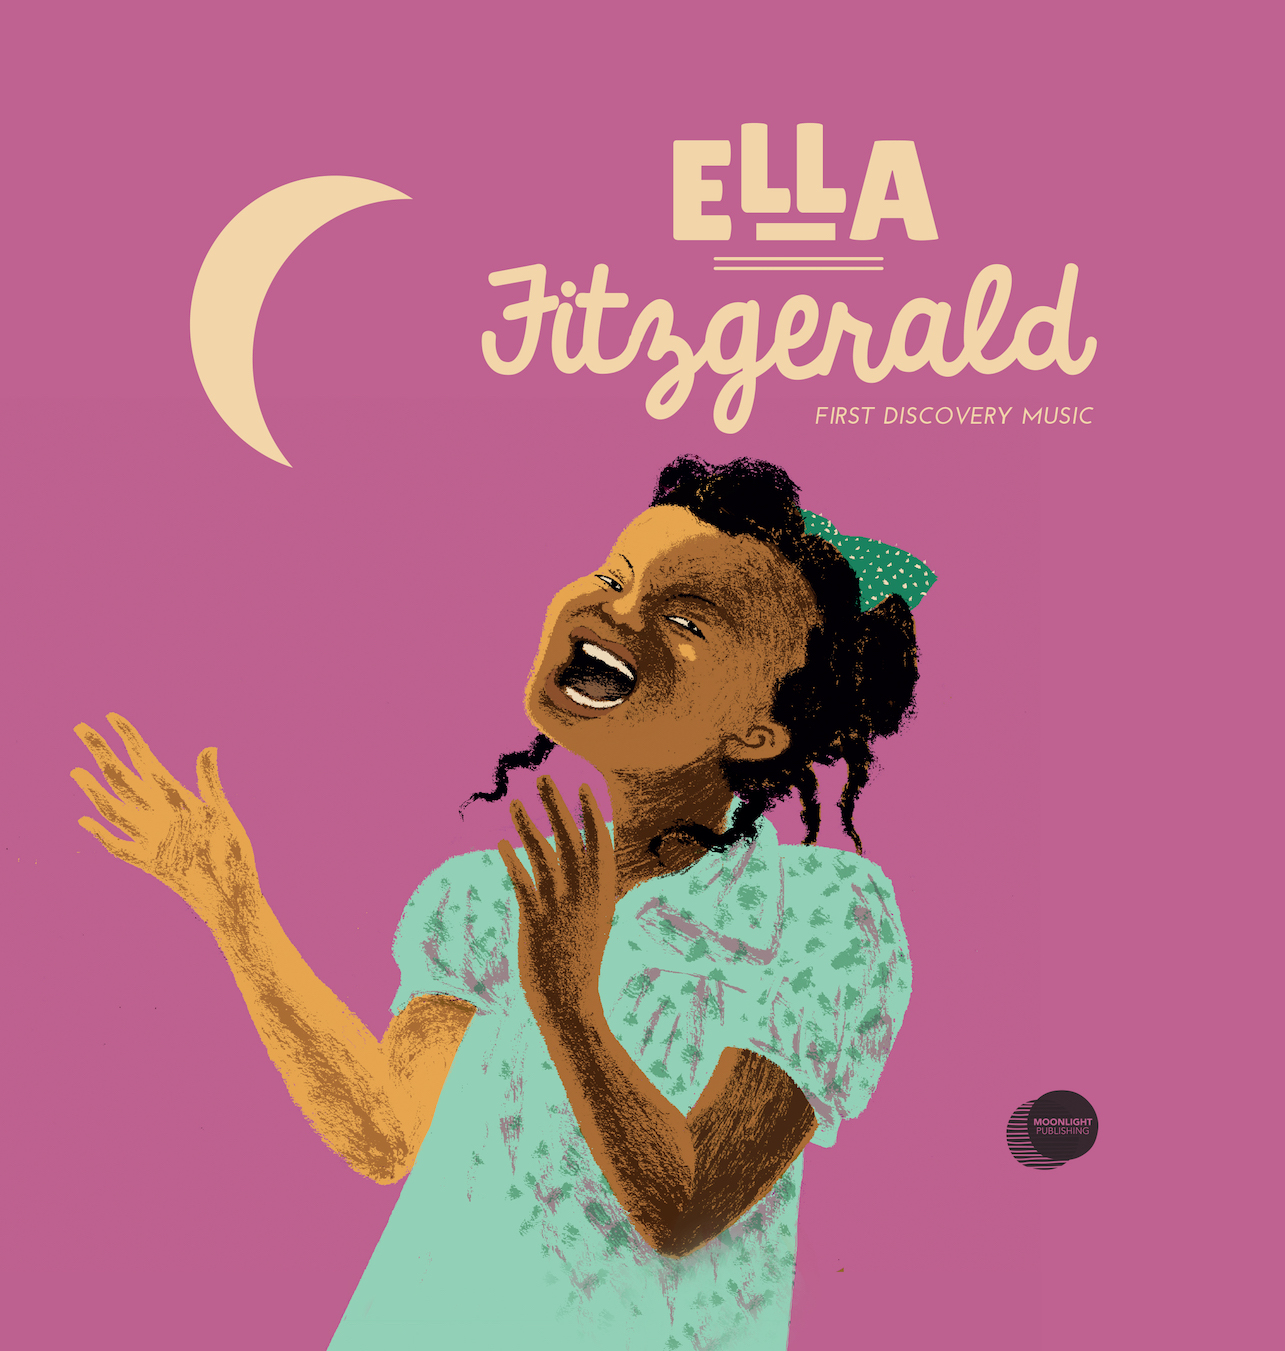 Ella Fitzgerald: First Discovery Music